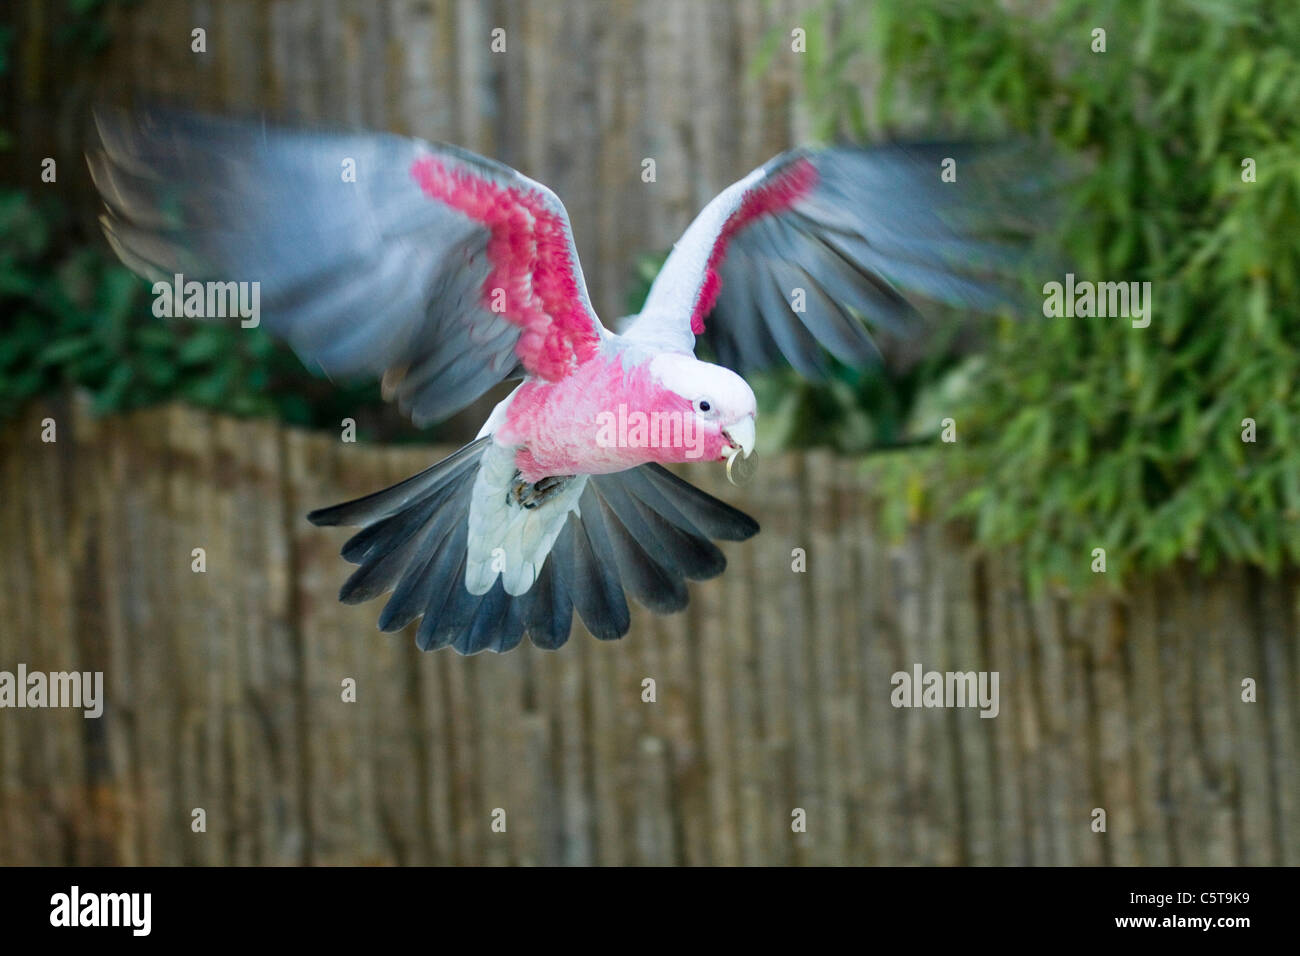 Roseate Cockatoo; Eolophus roseicapilla; carrying a pound coin; Paradise Park; Cornwall; UK - Stock Image